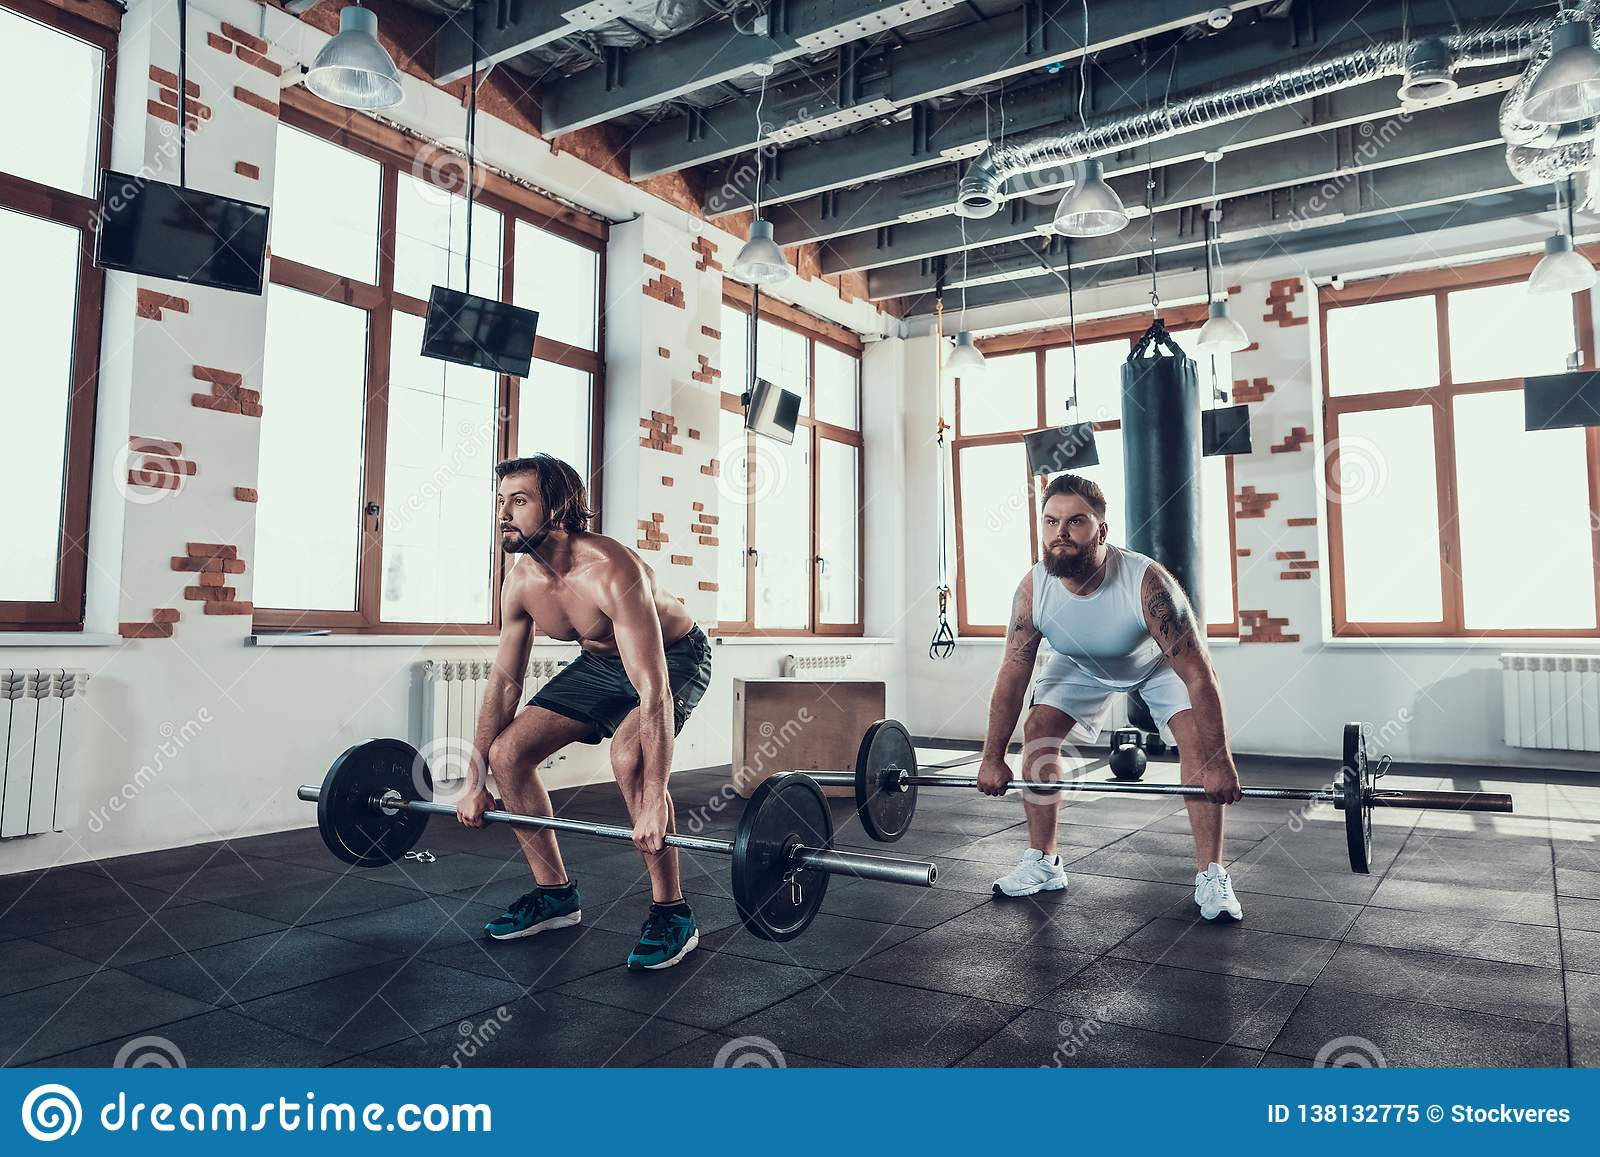 6f6ba21e84 two-powerful-guys-gym-lifting-barbells-training-day-fitness-club-healthy -lifestyle-athlete-stamina-active-holidays-crossfit-138132775.jpg